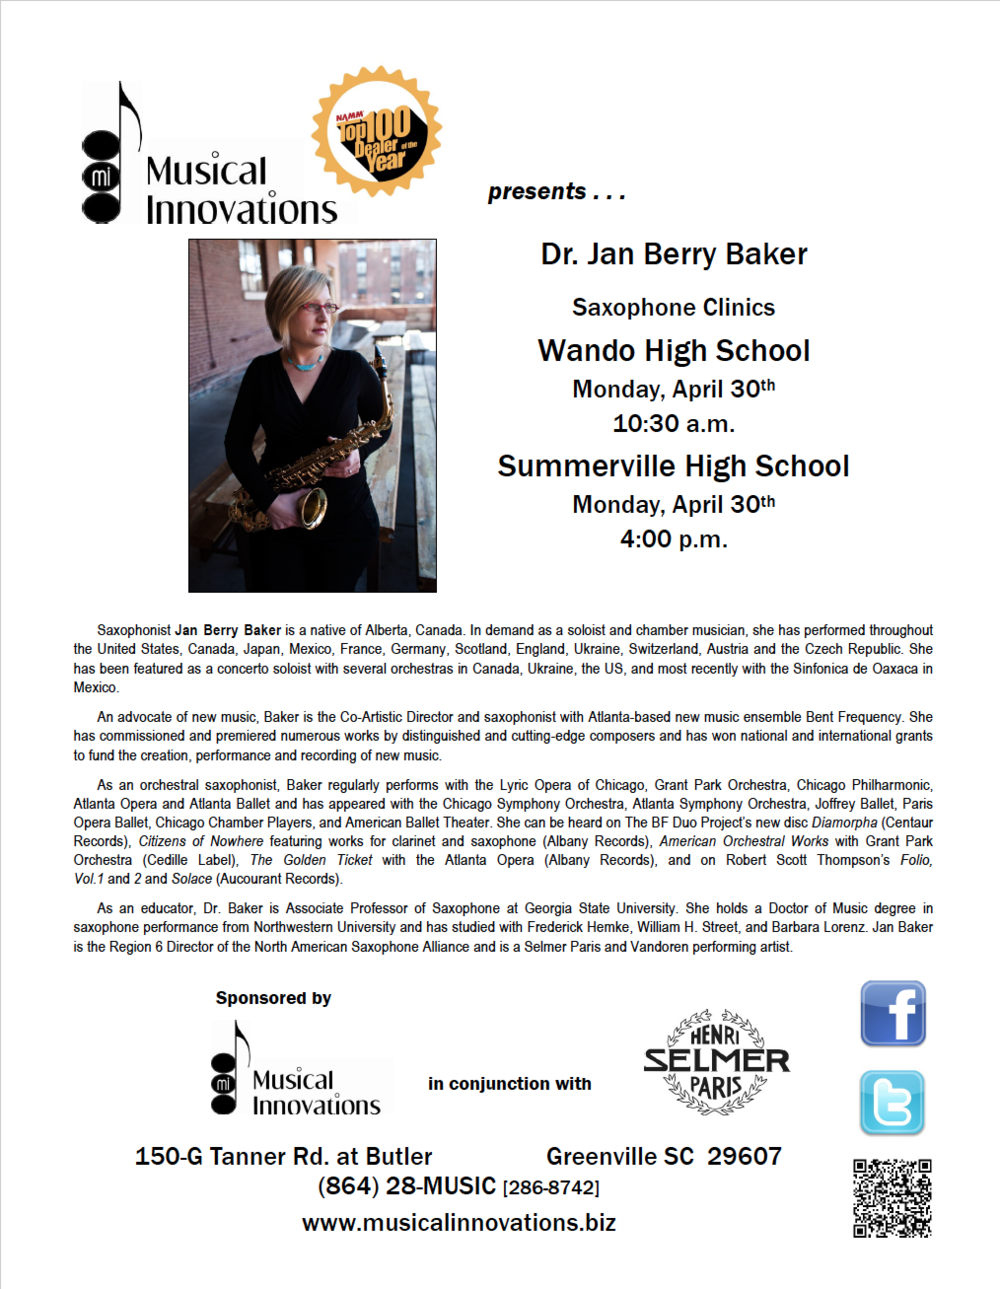 Dr. Jan Berry Baker is hosting a Saxophone Clinic at Wando High School. Sponsored in part by Musical Innovations.